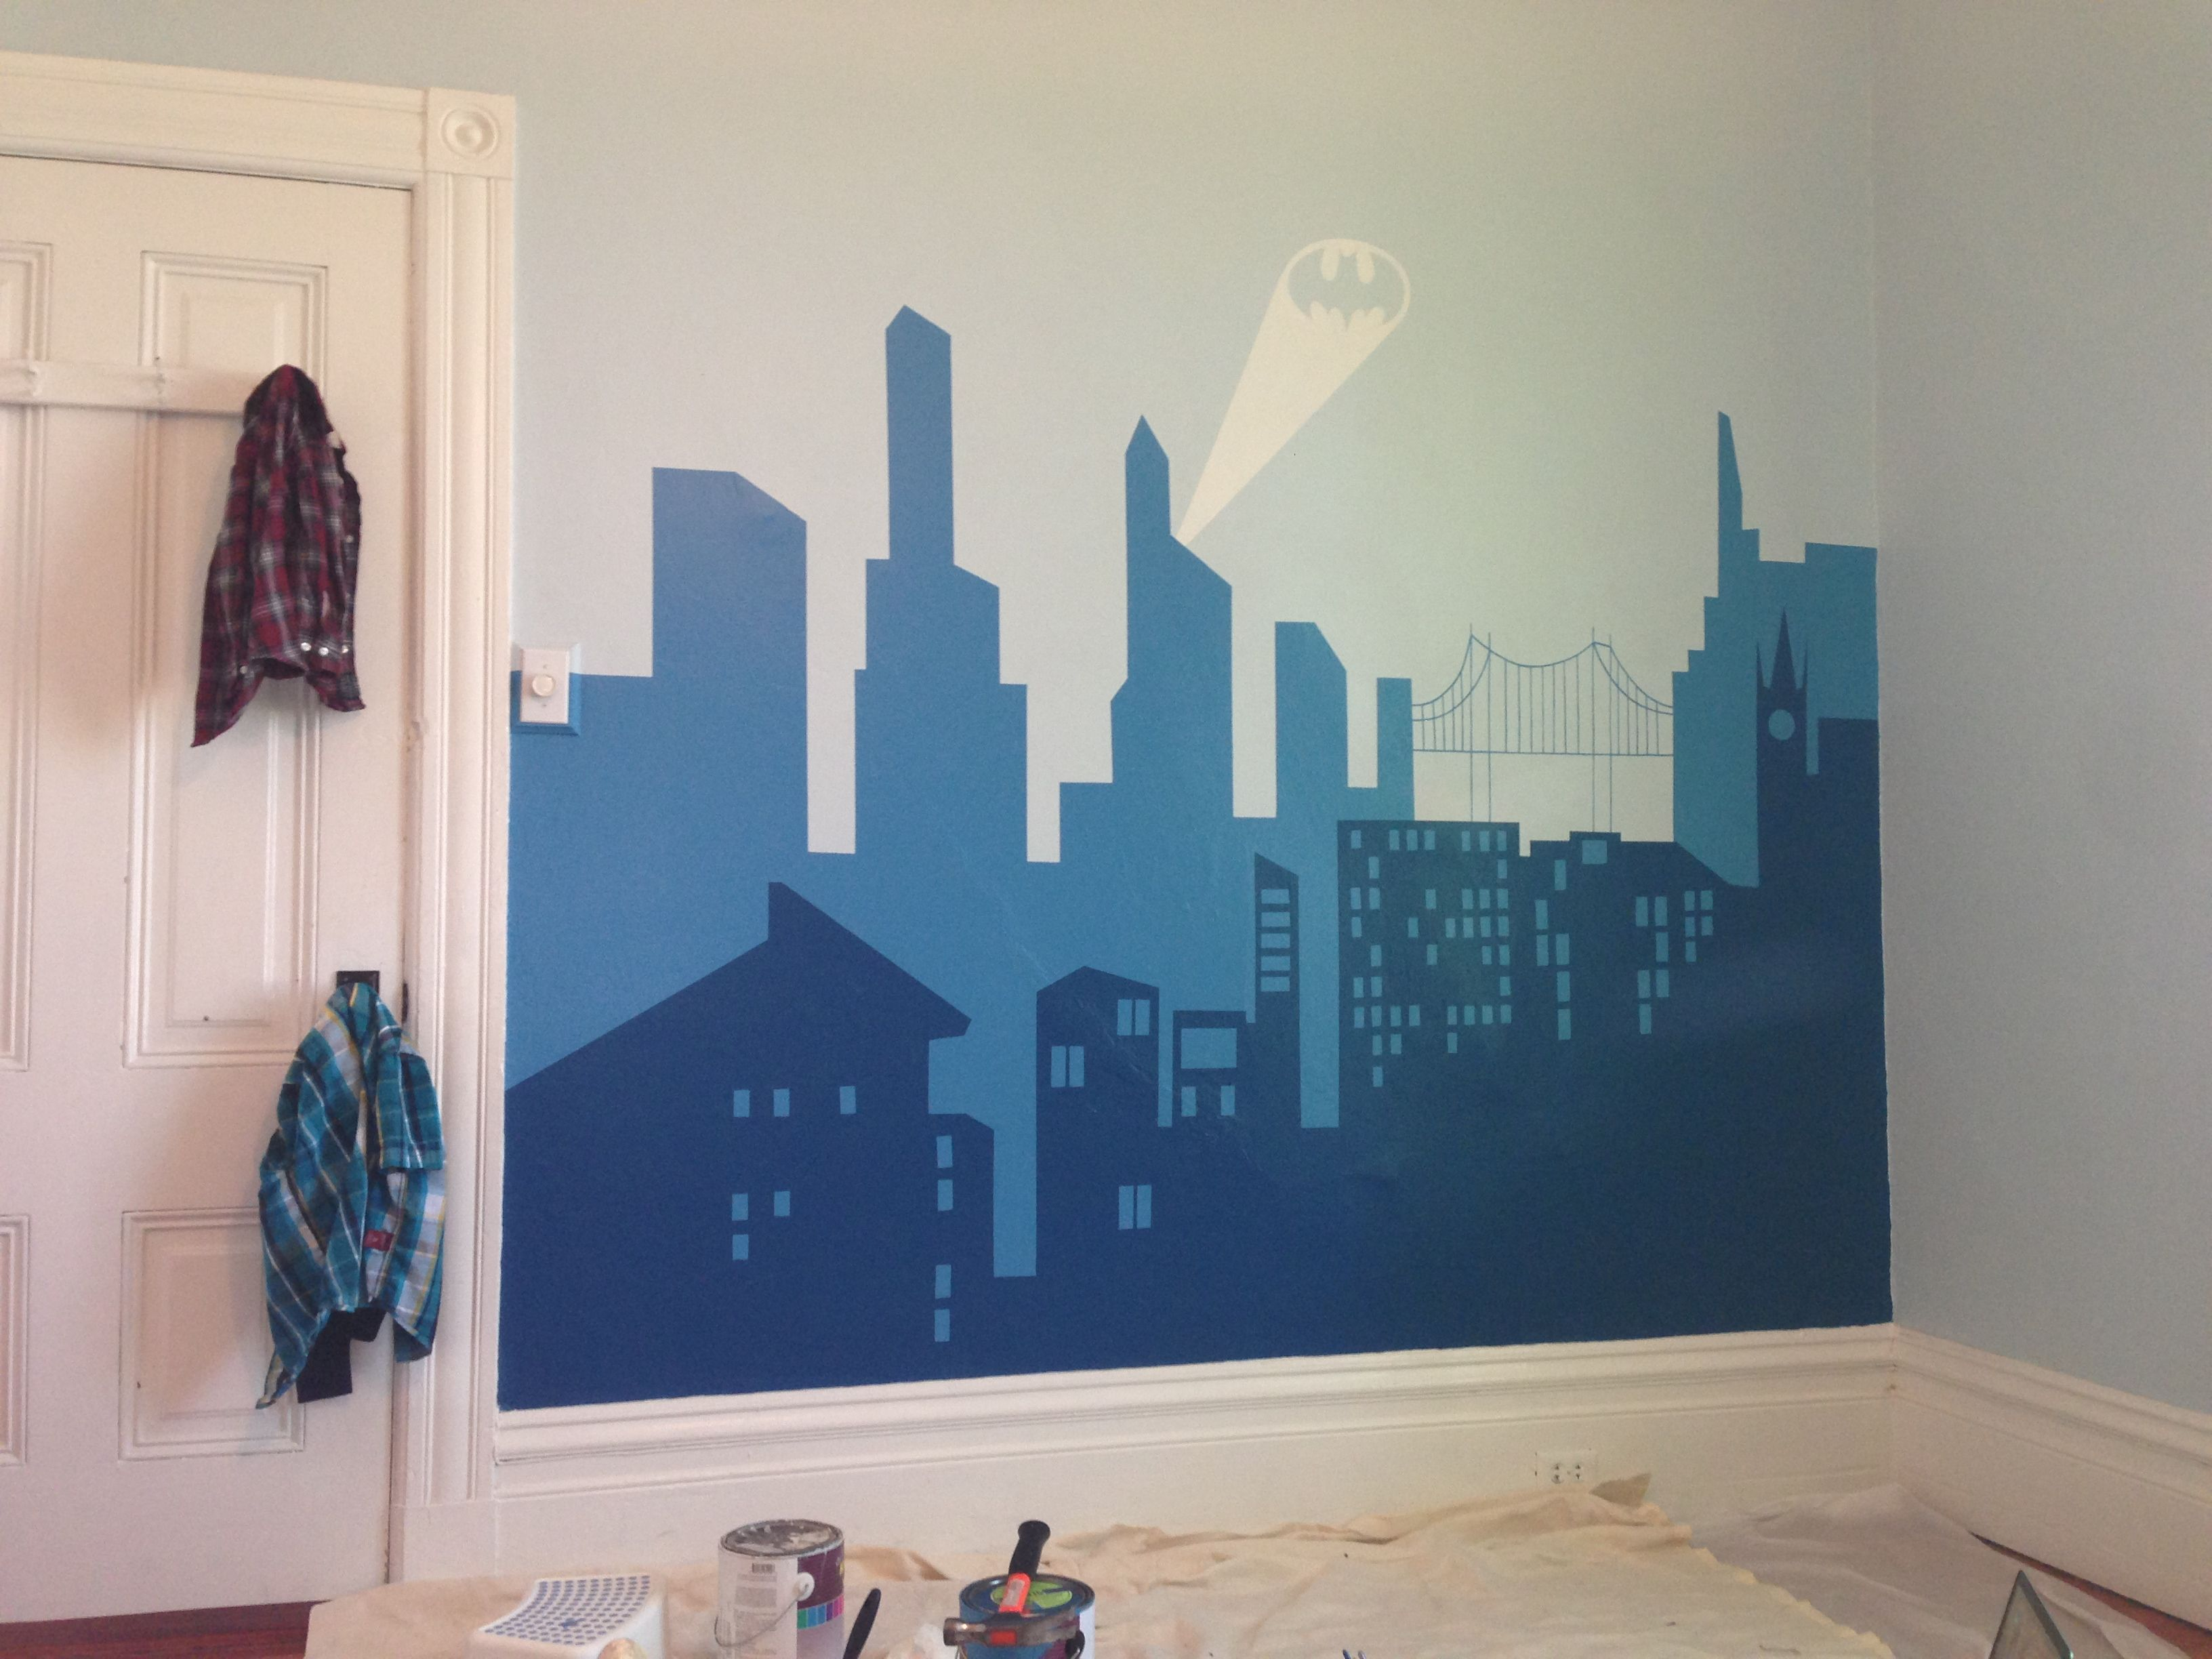 10 indoor mural ideas spooky home decor pinterest - Wandbilder kinderzimmer junge ...